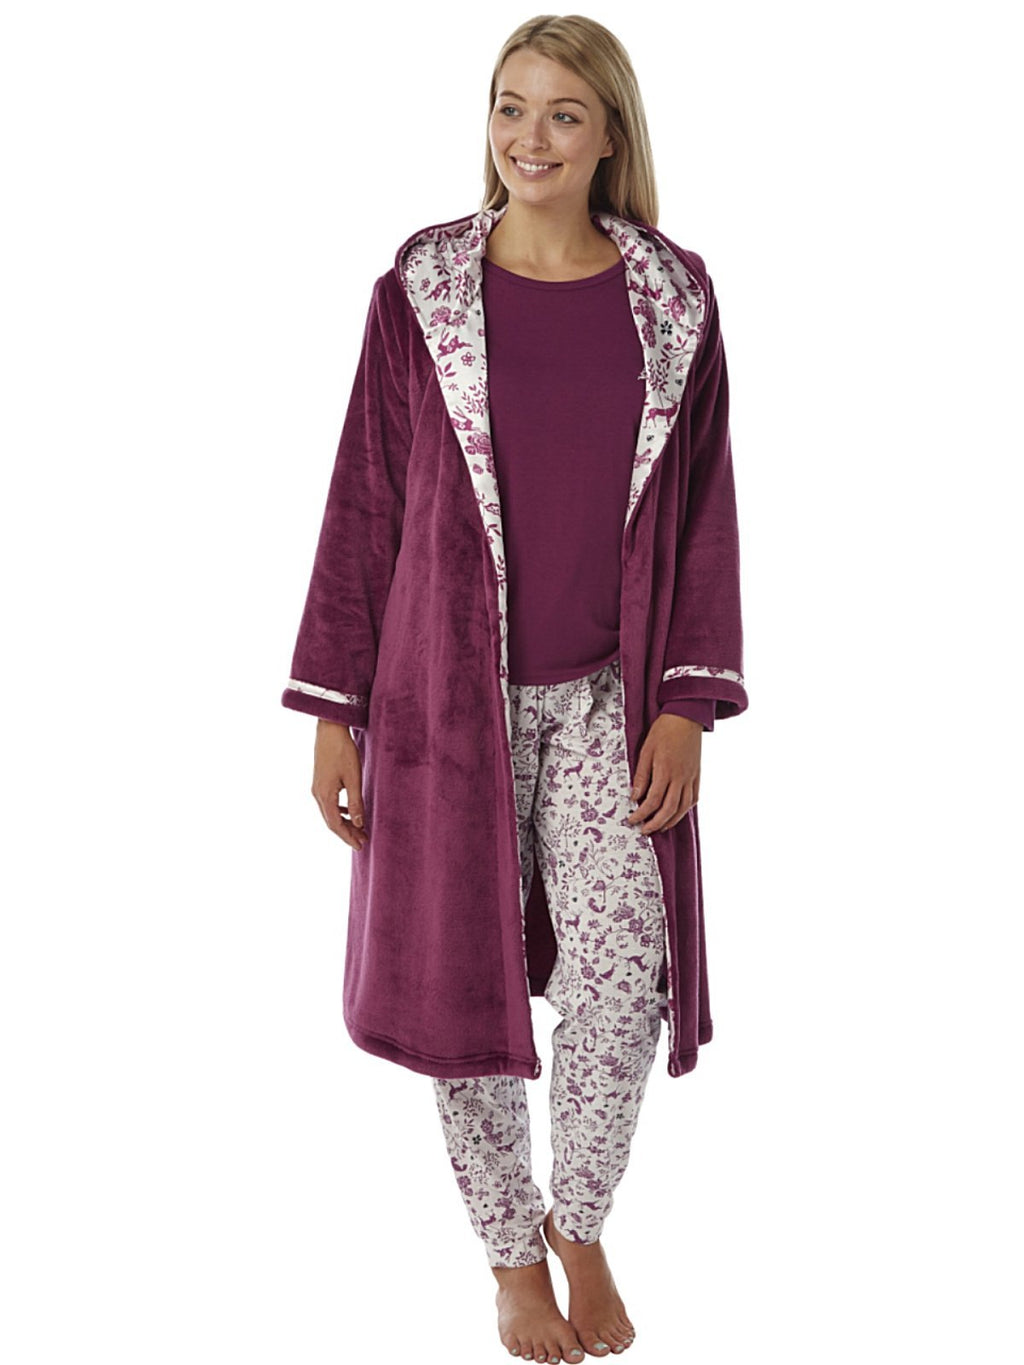 Women's Soft Fleece Hooded Robe Long Sleeve Dressing Gowns ,Hooded Robe,